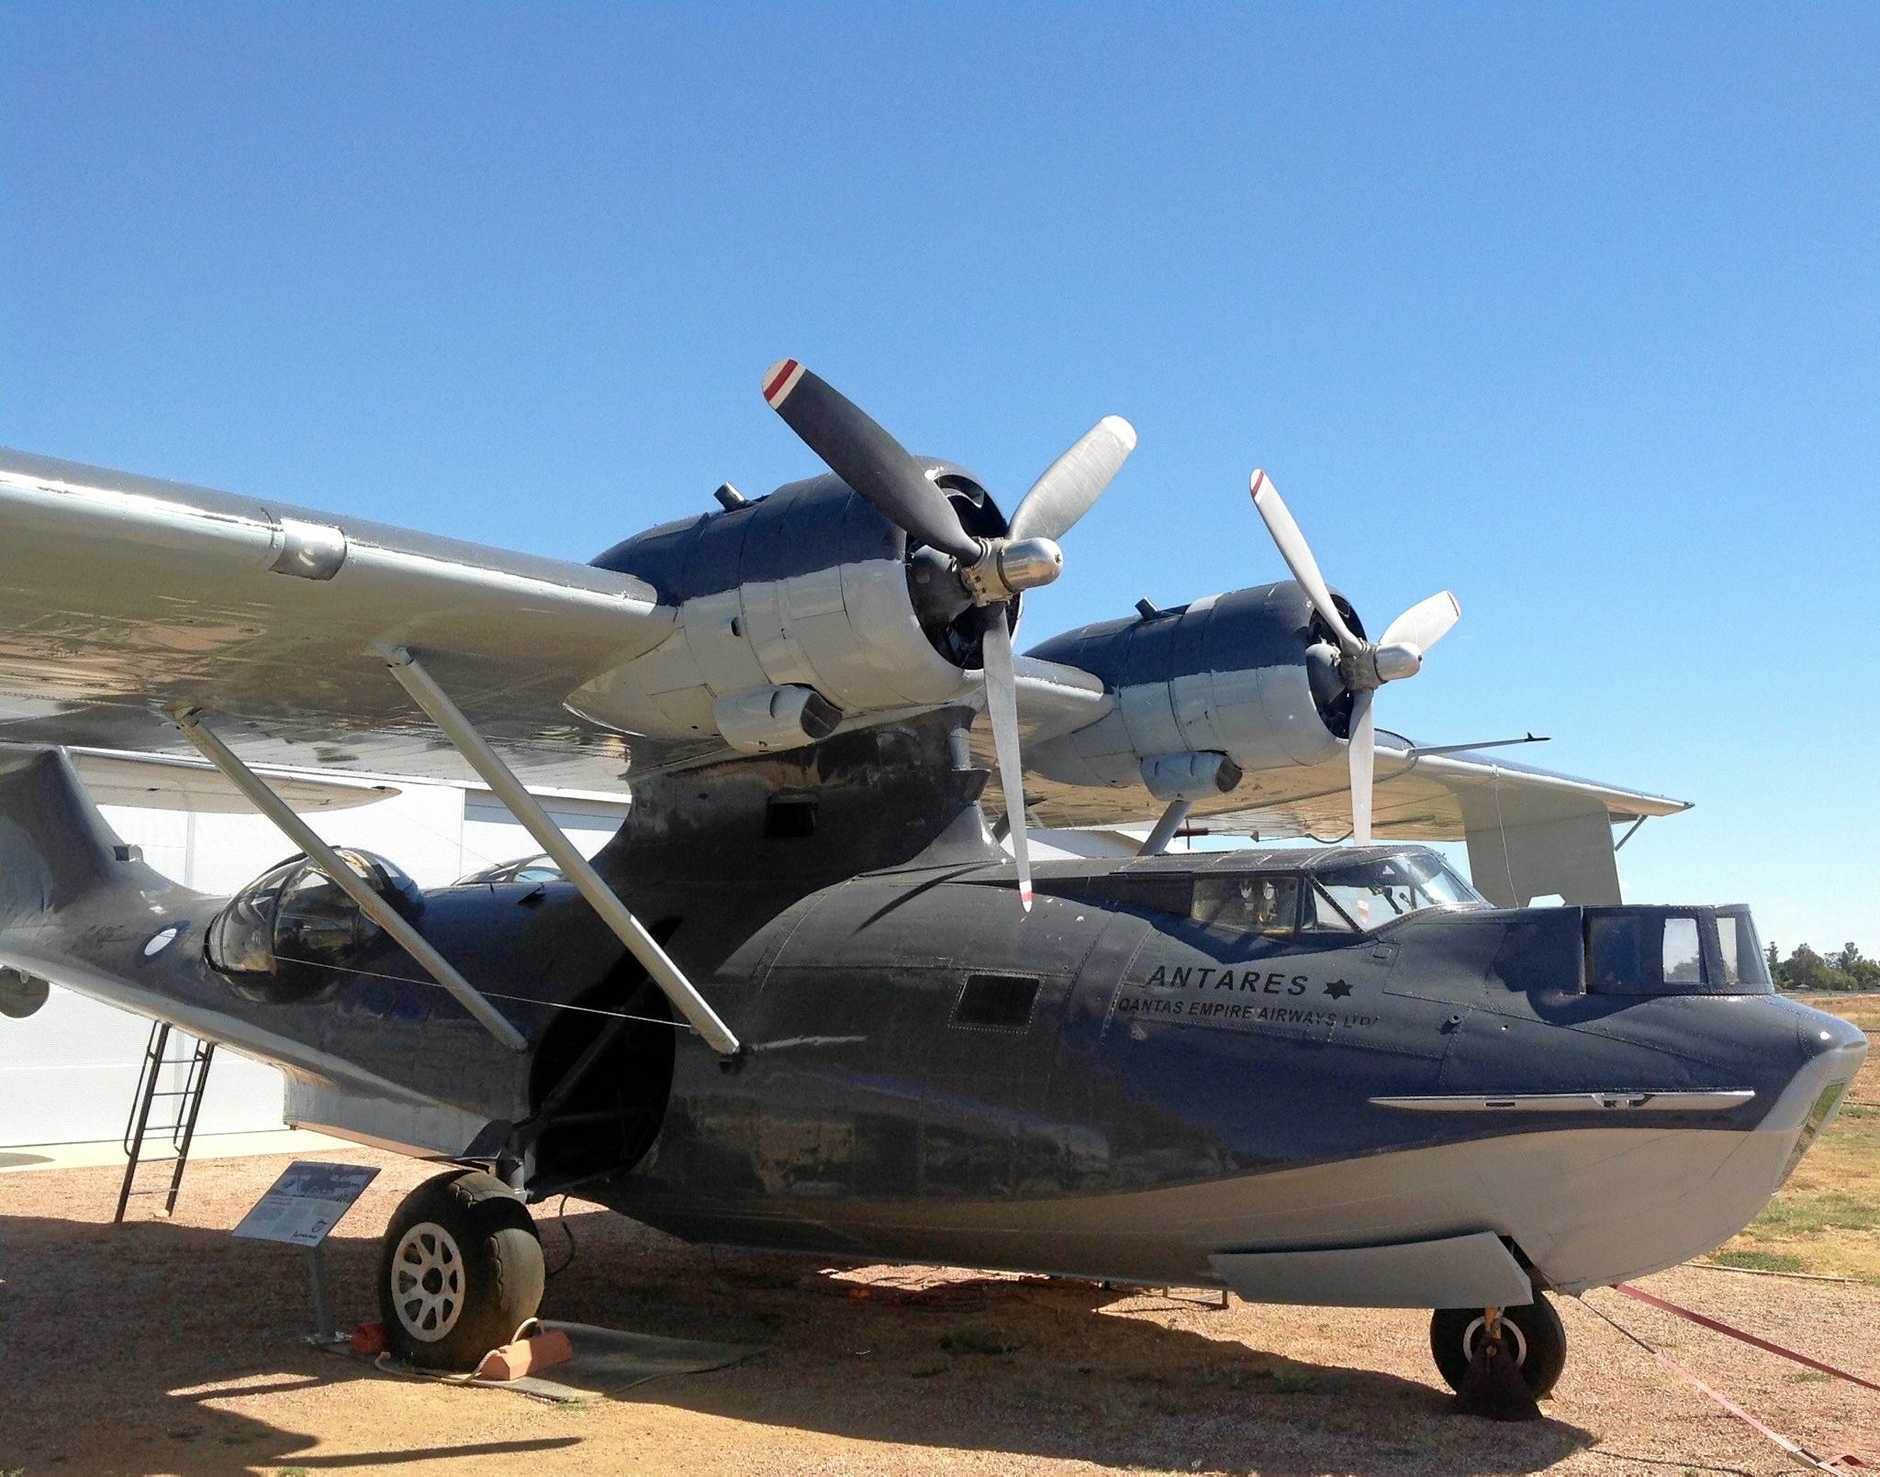 A Catalina flying boat at Qantas Founders Museum at Longreach.